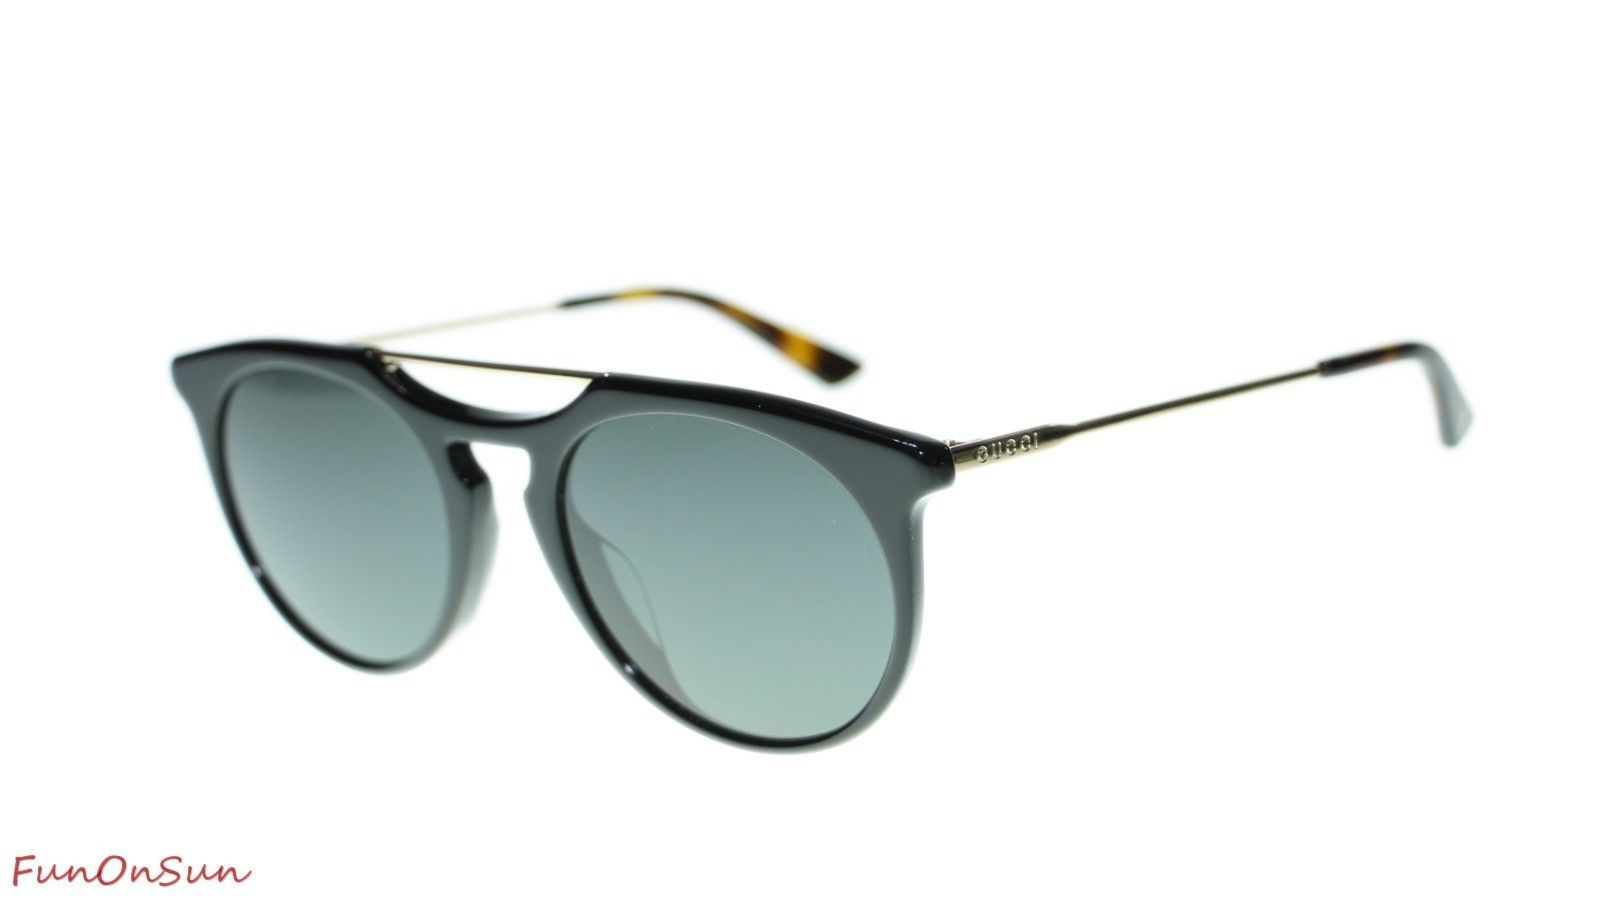 a42f8868b70 NEW Gucci Men Sunglasses GG0320S 001 Black and 50 similar items. 10